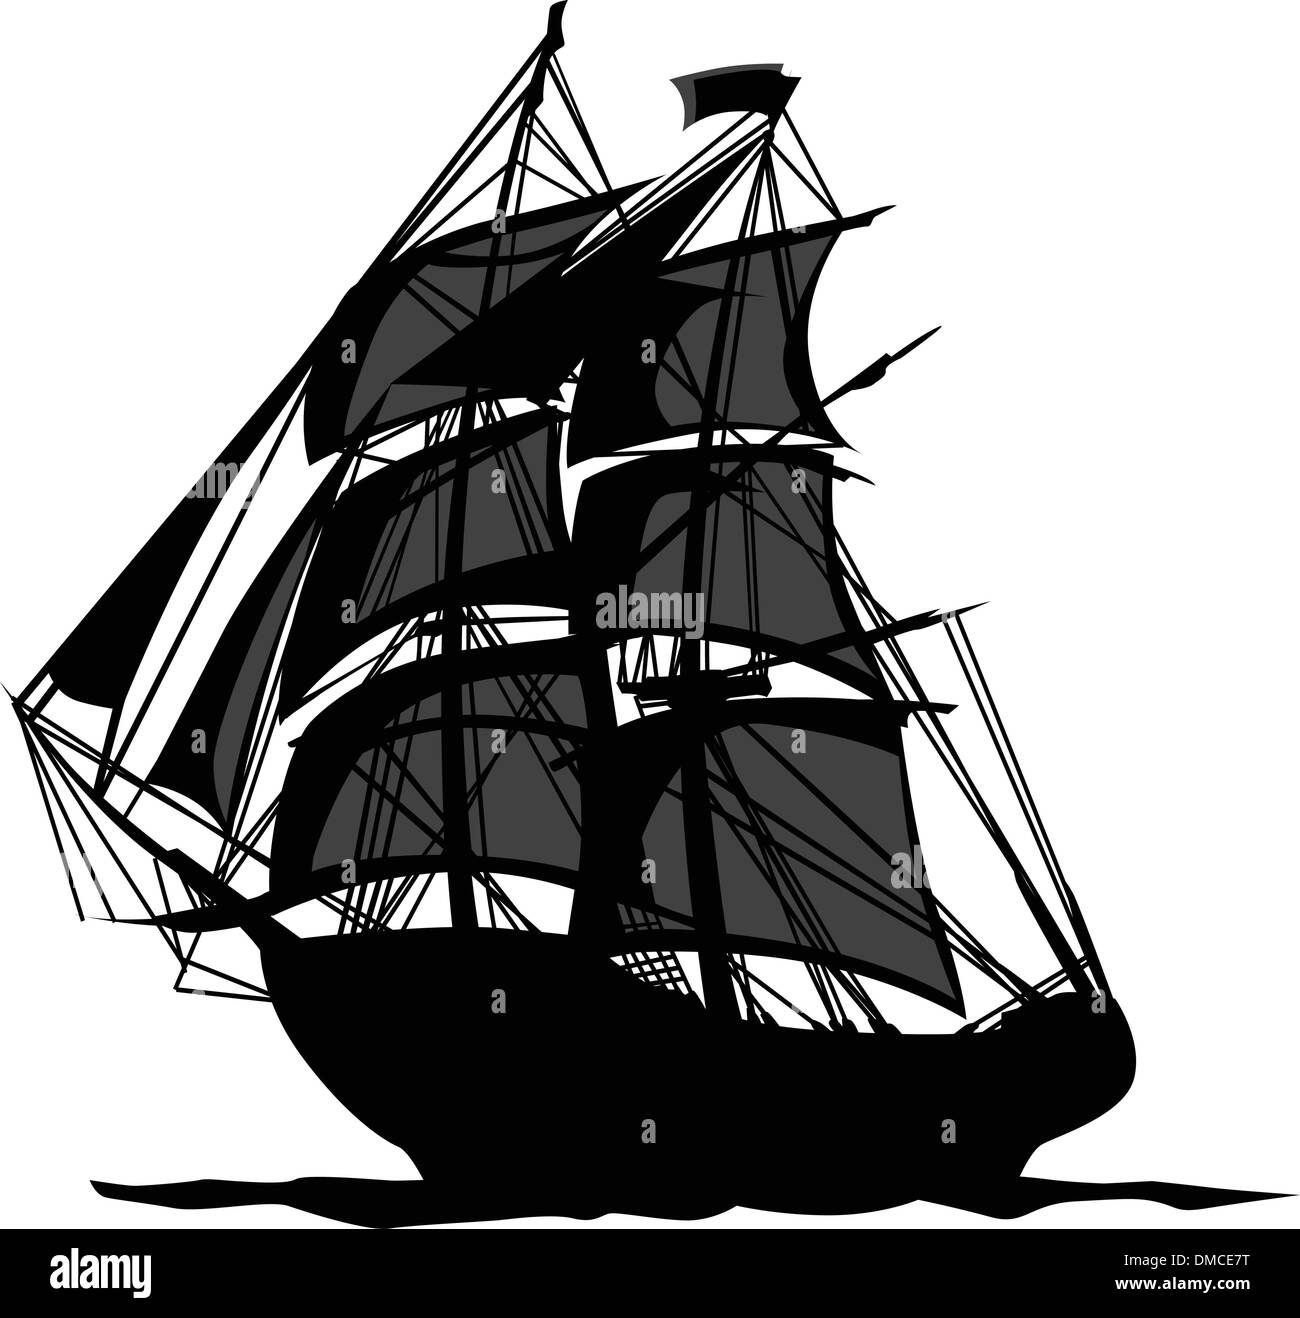 Pirate Ship with Shadows  in Sails Graphic Vector Illustration - Stock Image